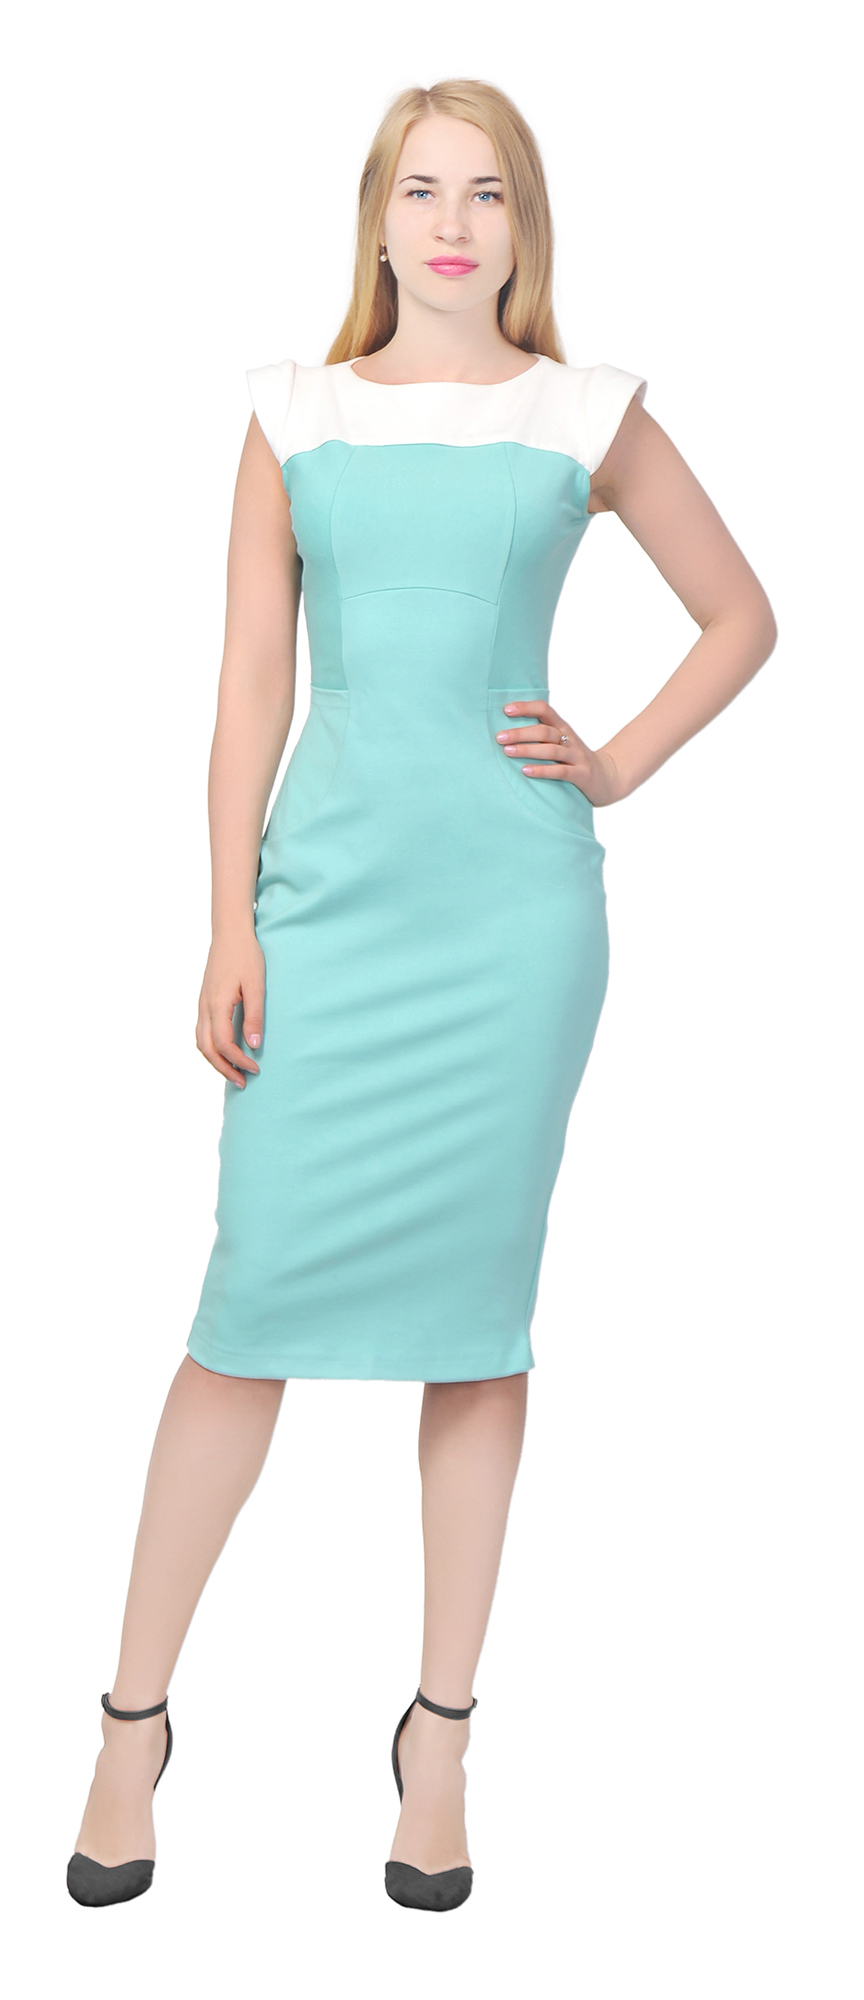 MARYCRAFTS WOMEN\'S COLORBLOCK SHEATH MIDI DRESS OFFICE COCTAIL WORK ...